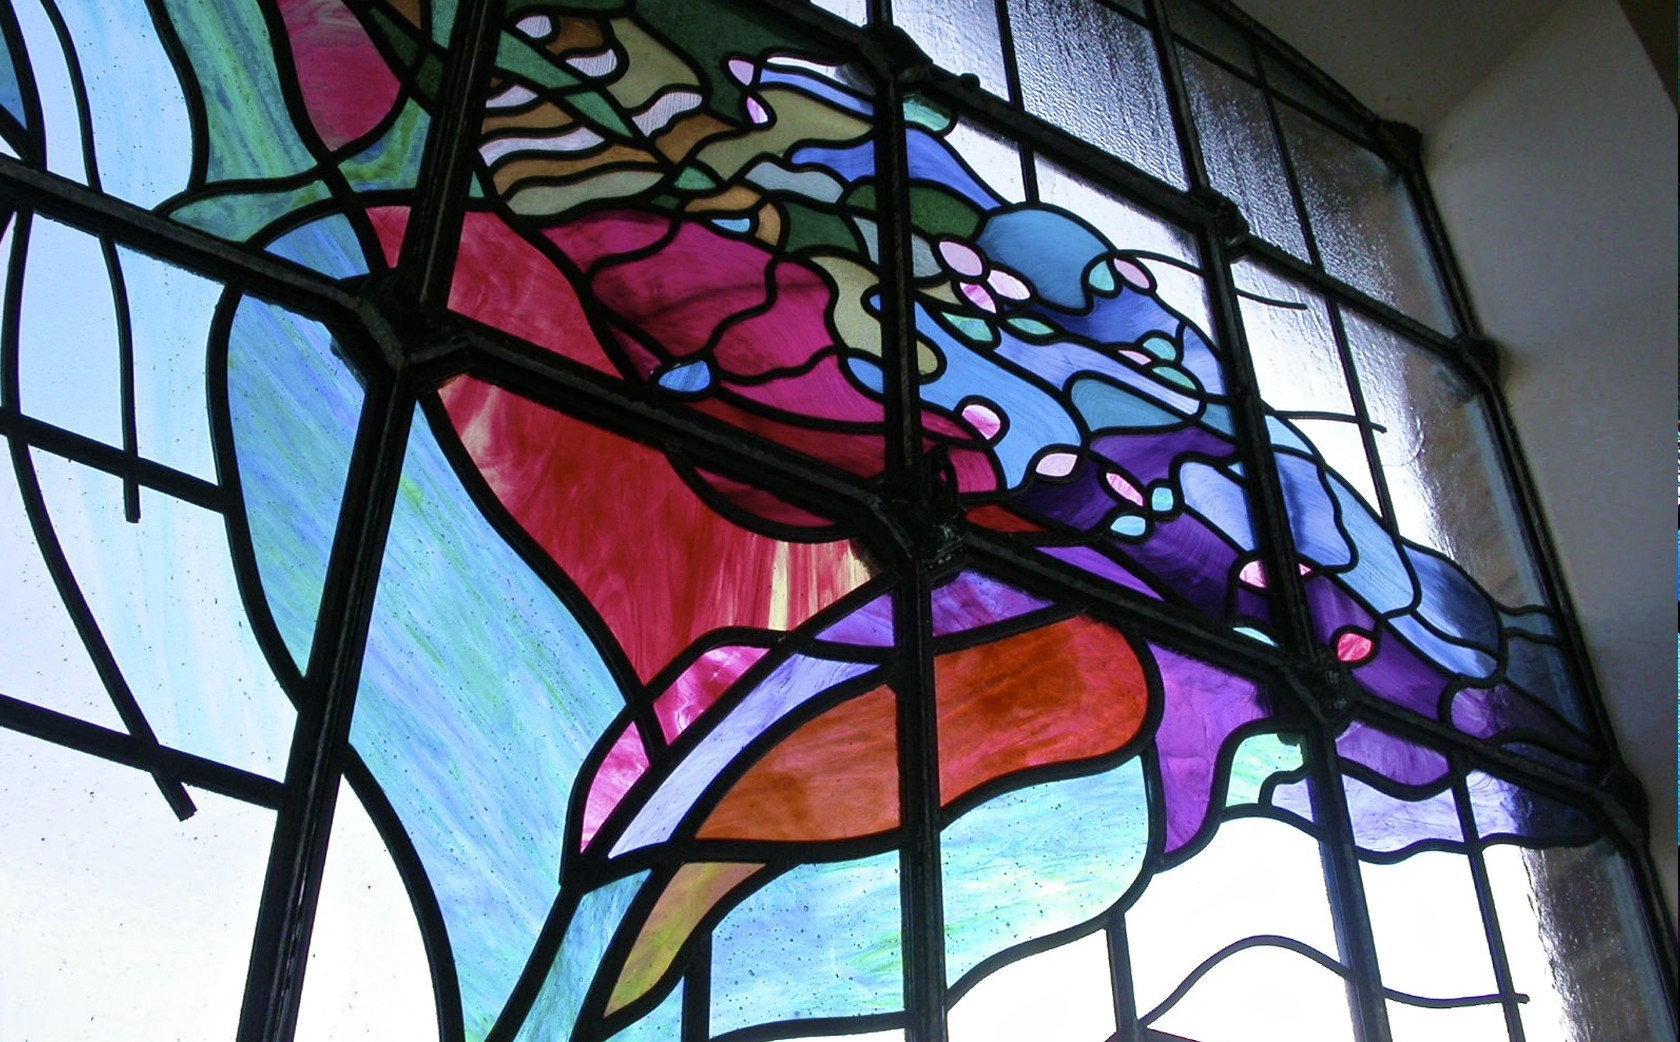 Floral Stained Glass window